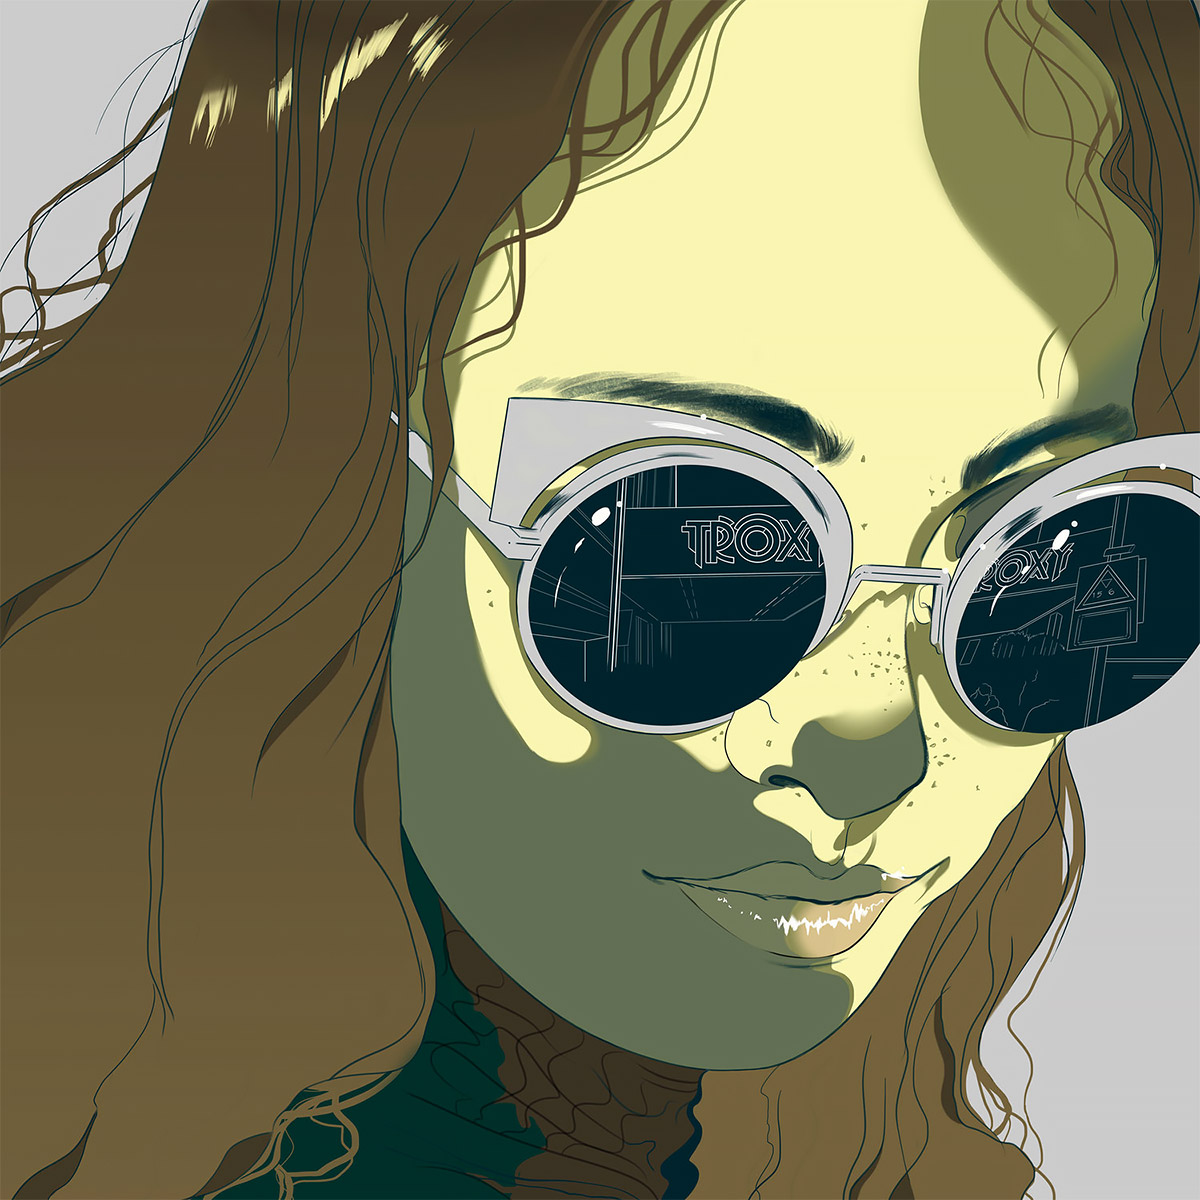 Comic Book-Inspired Illustrations by Janelle Barone